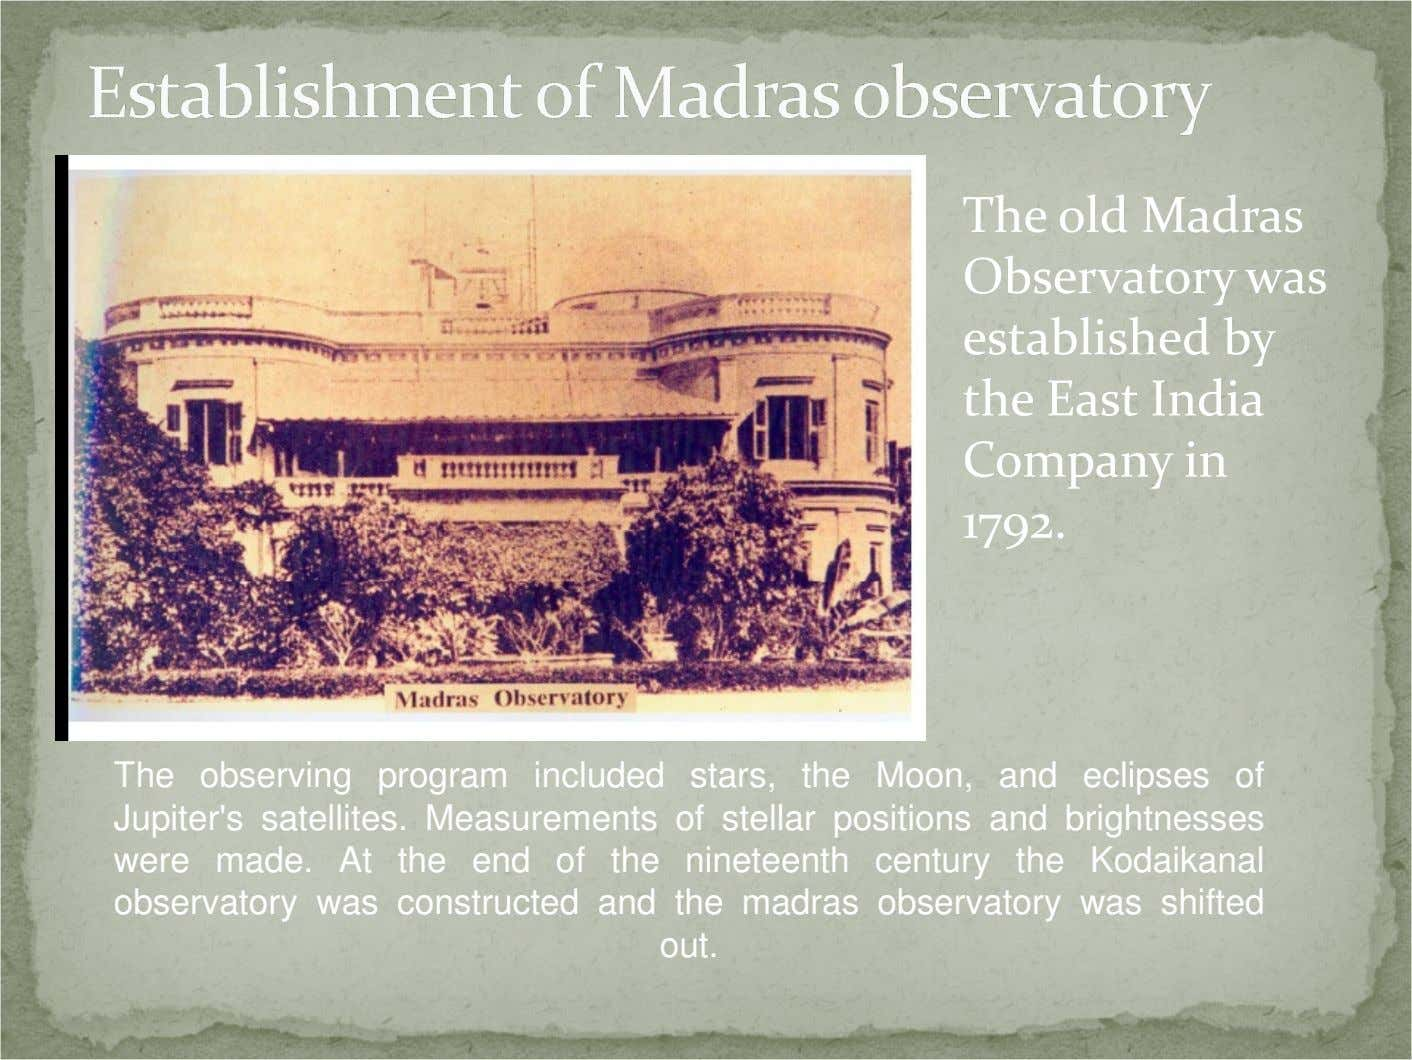 The old Madras Observatory was established by the East India Company in 1792. The observing